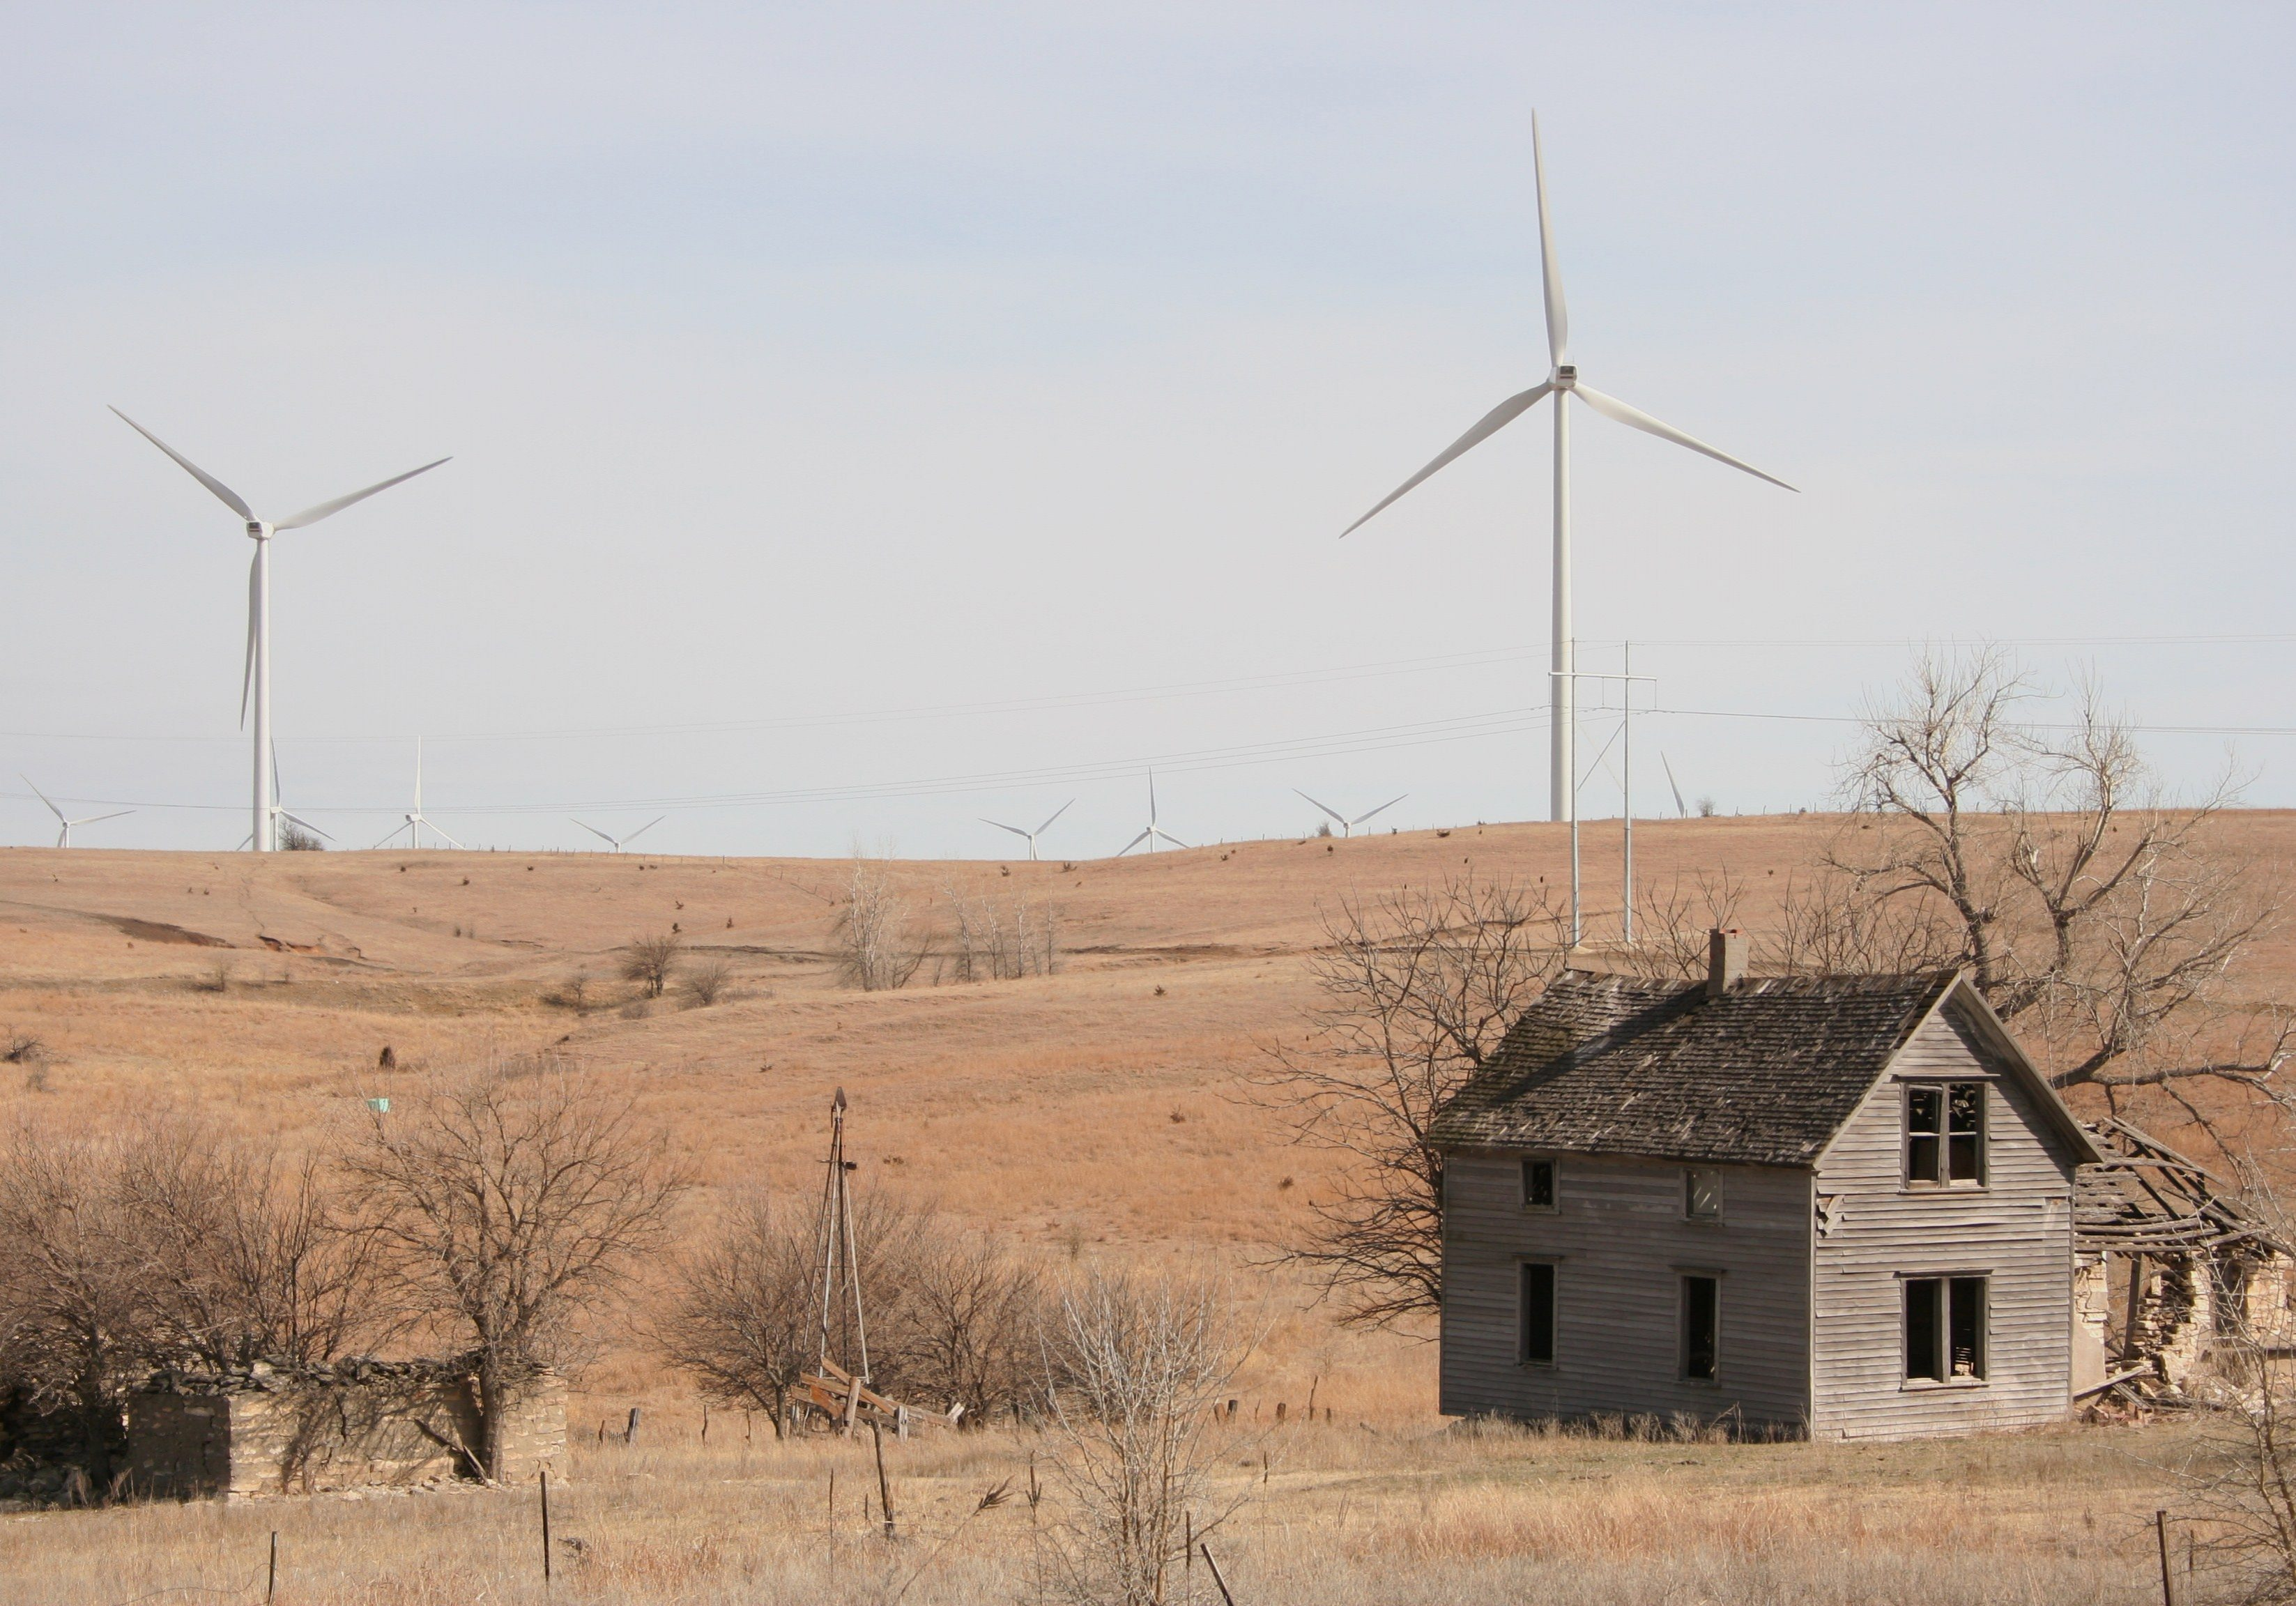 Abandoned farmhouse with turbines in background. Meridian Way Wind Farm, Cloud County, Kansas. Photo by Phil Warburg